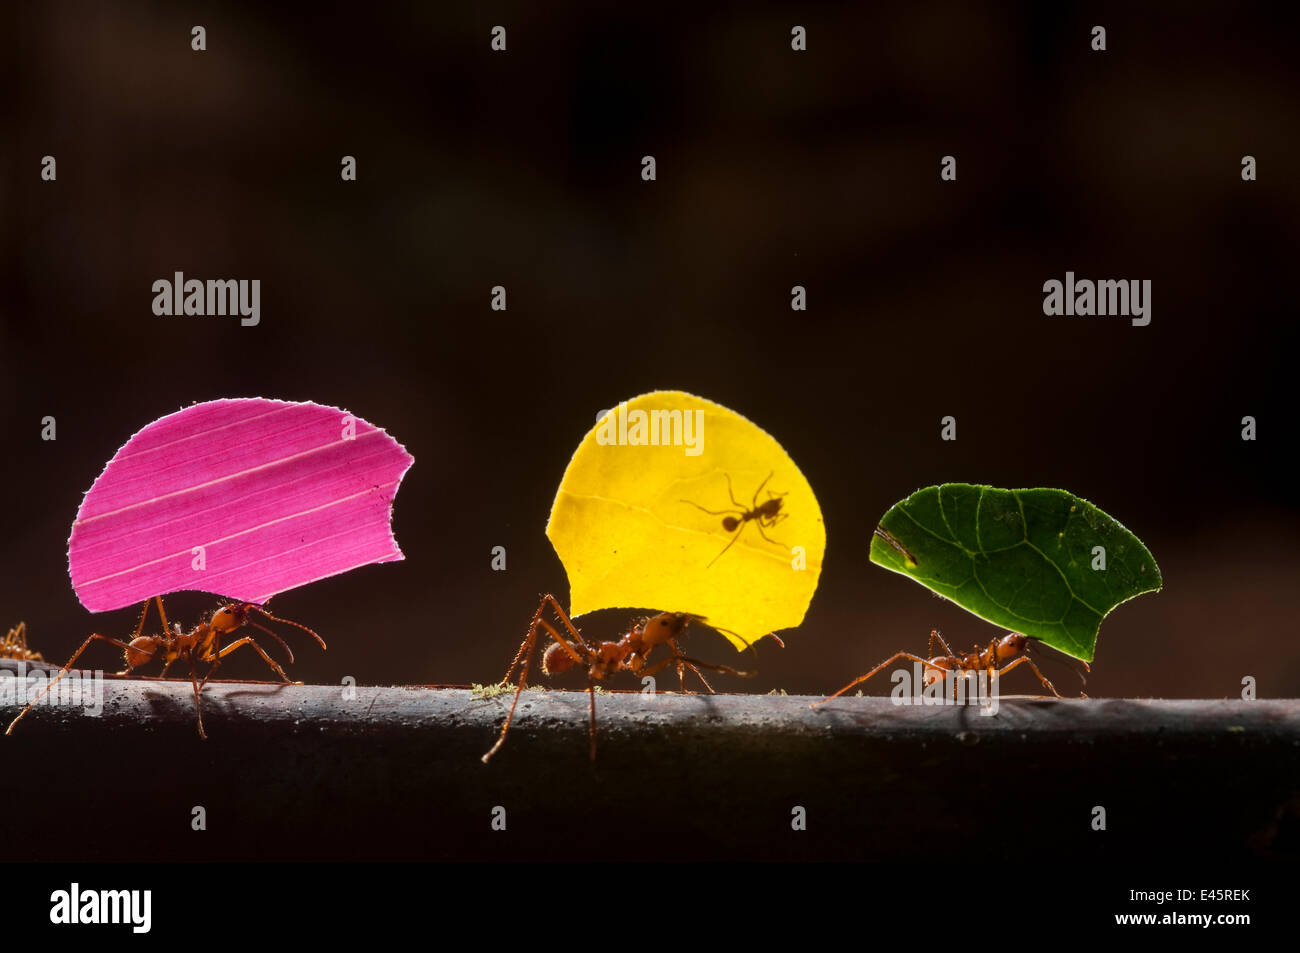 Leaf cutter ants (Atta cephalotes) carrying sections of leaves, to be used for cultivating nutritious fungi, Santa Rita, Costa Rica Stock Photo